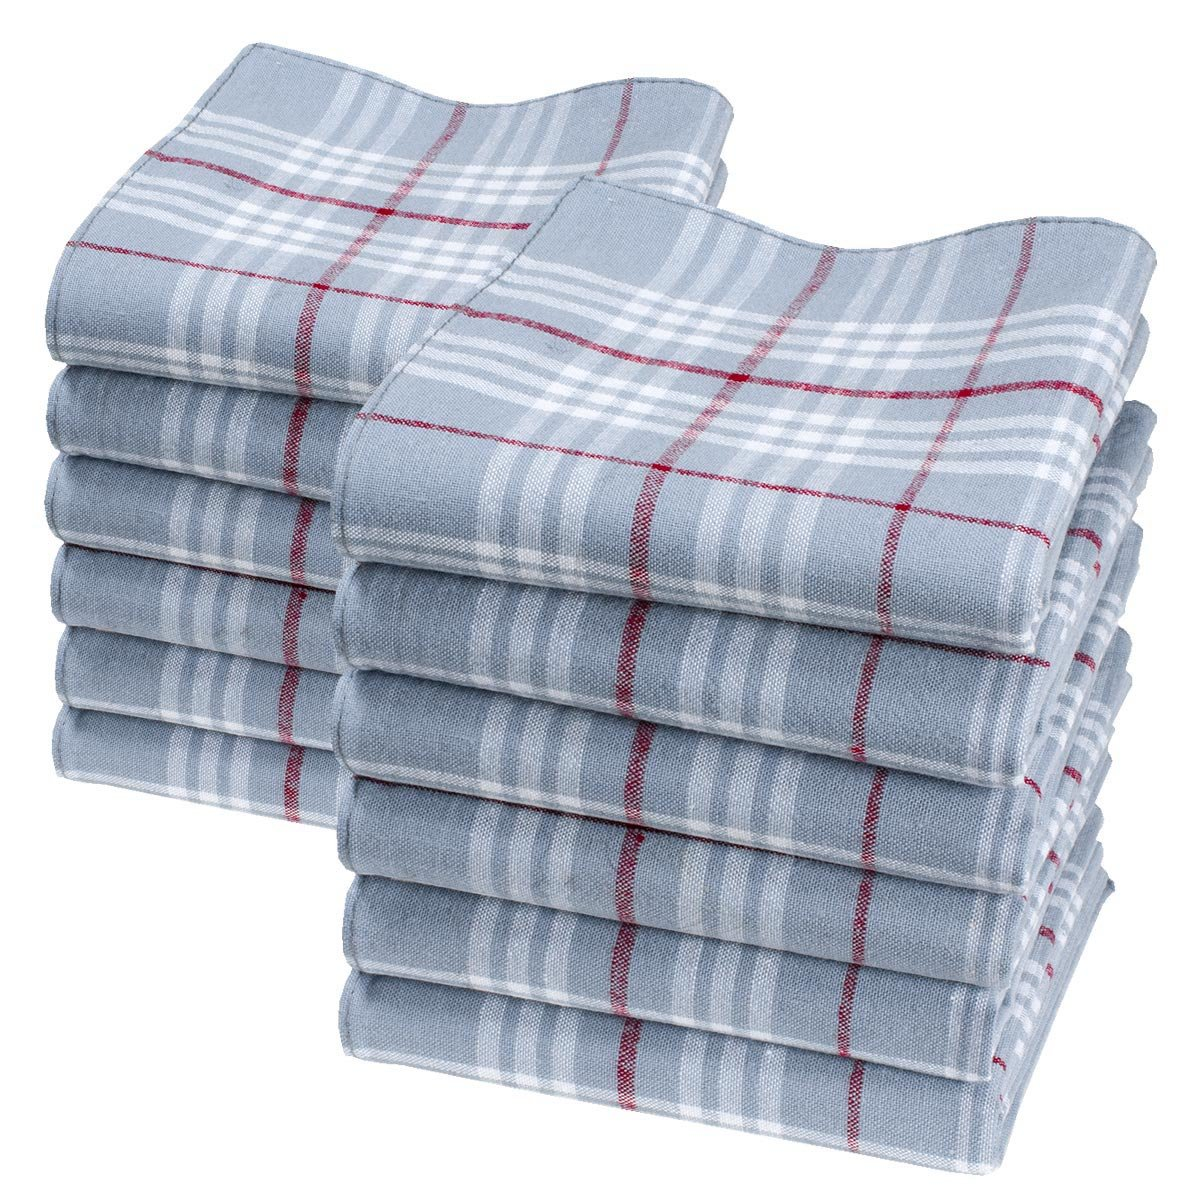 'Arnold' big and thick worker's handkerchiefs - 18